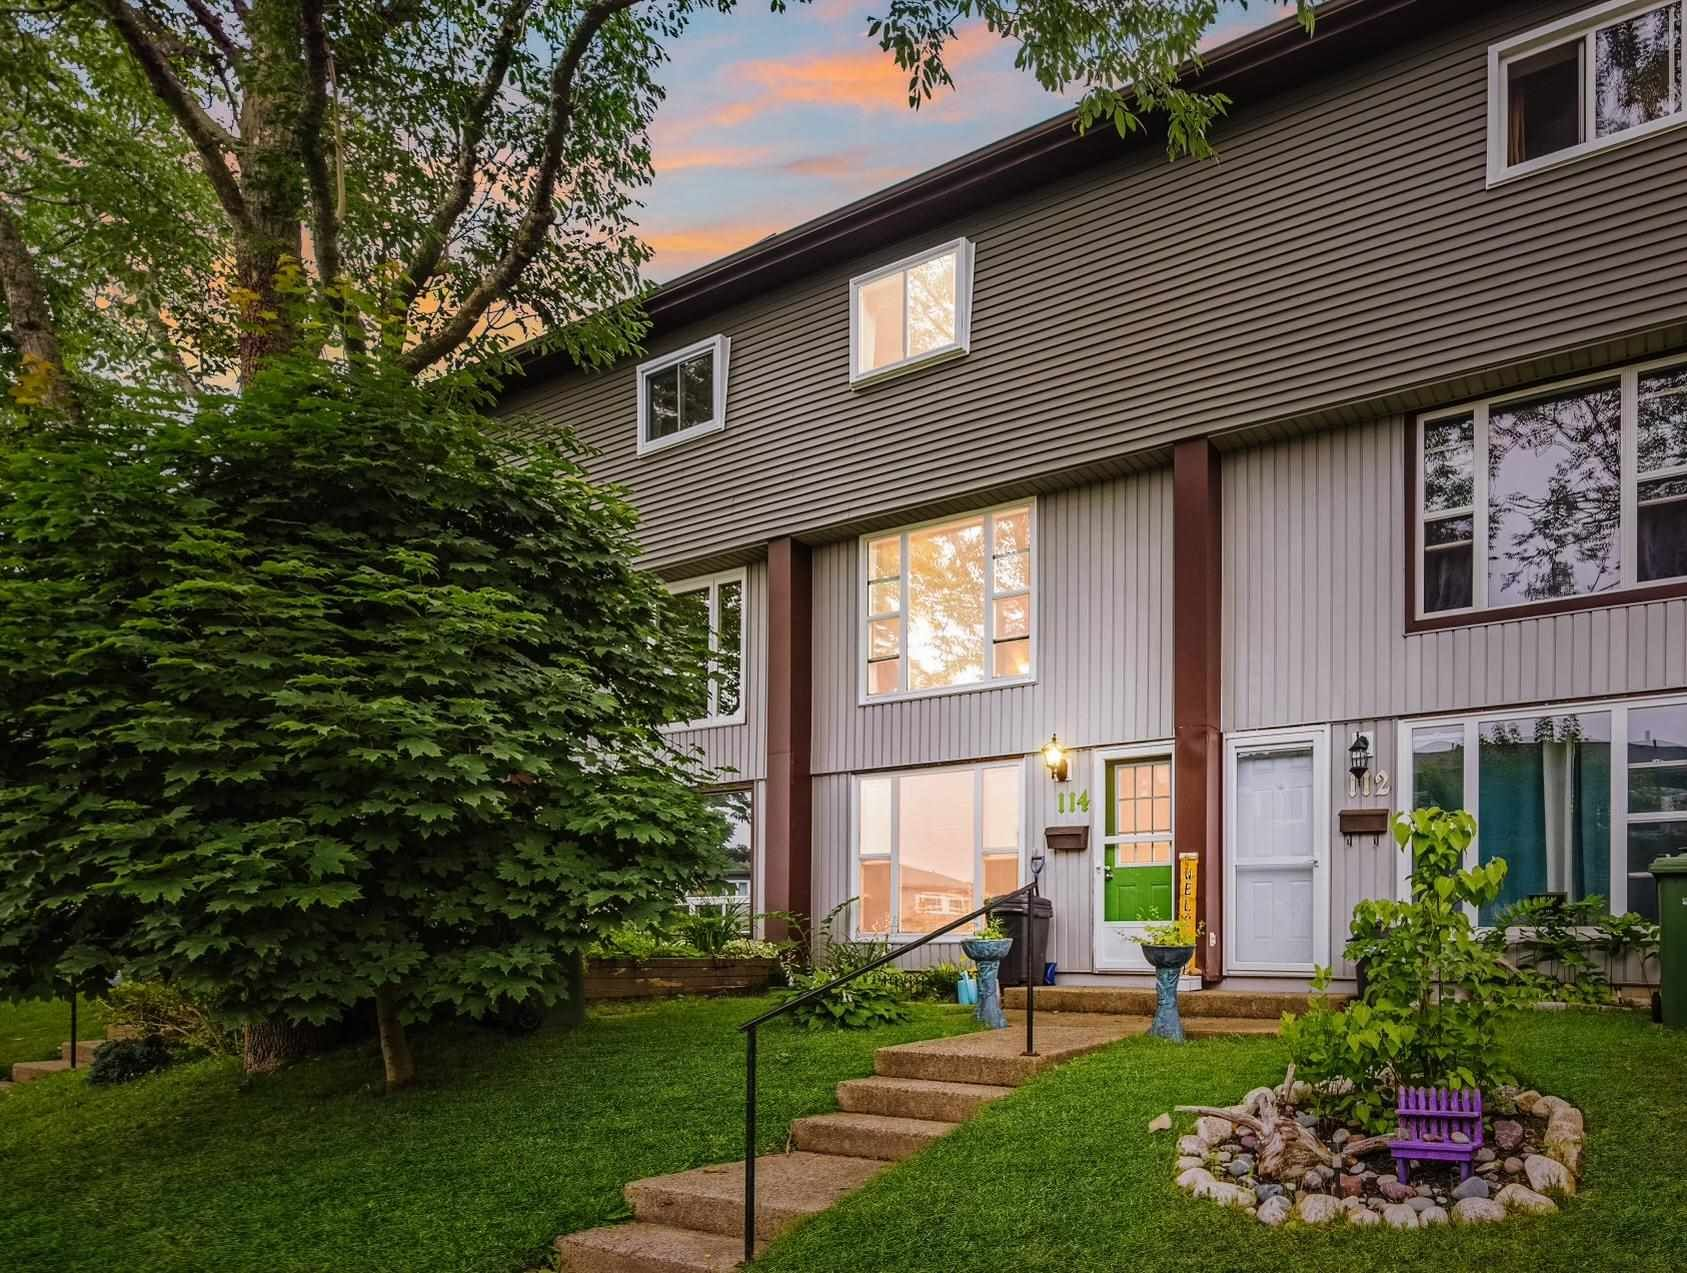 Main Photo: 114 Bromley Road in Cowie Hill: 7-Spryfield Residential for sale (Halifax-Dartmouth)  : MLS®# 202118970